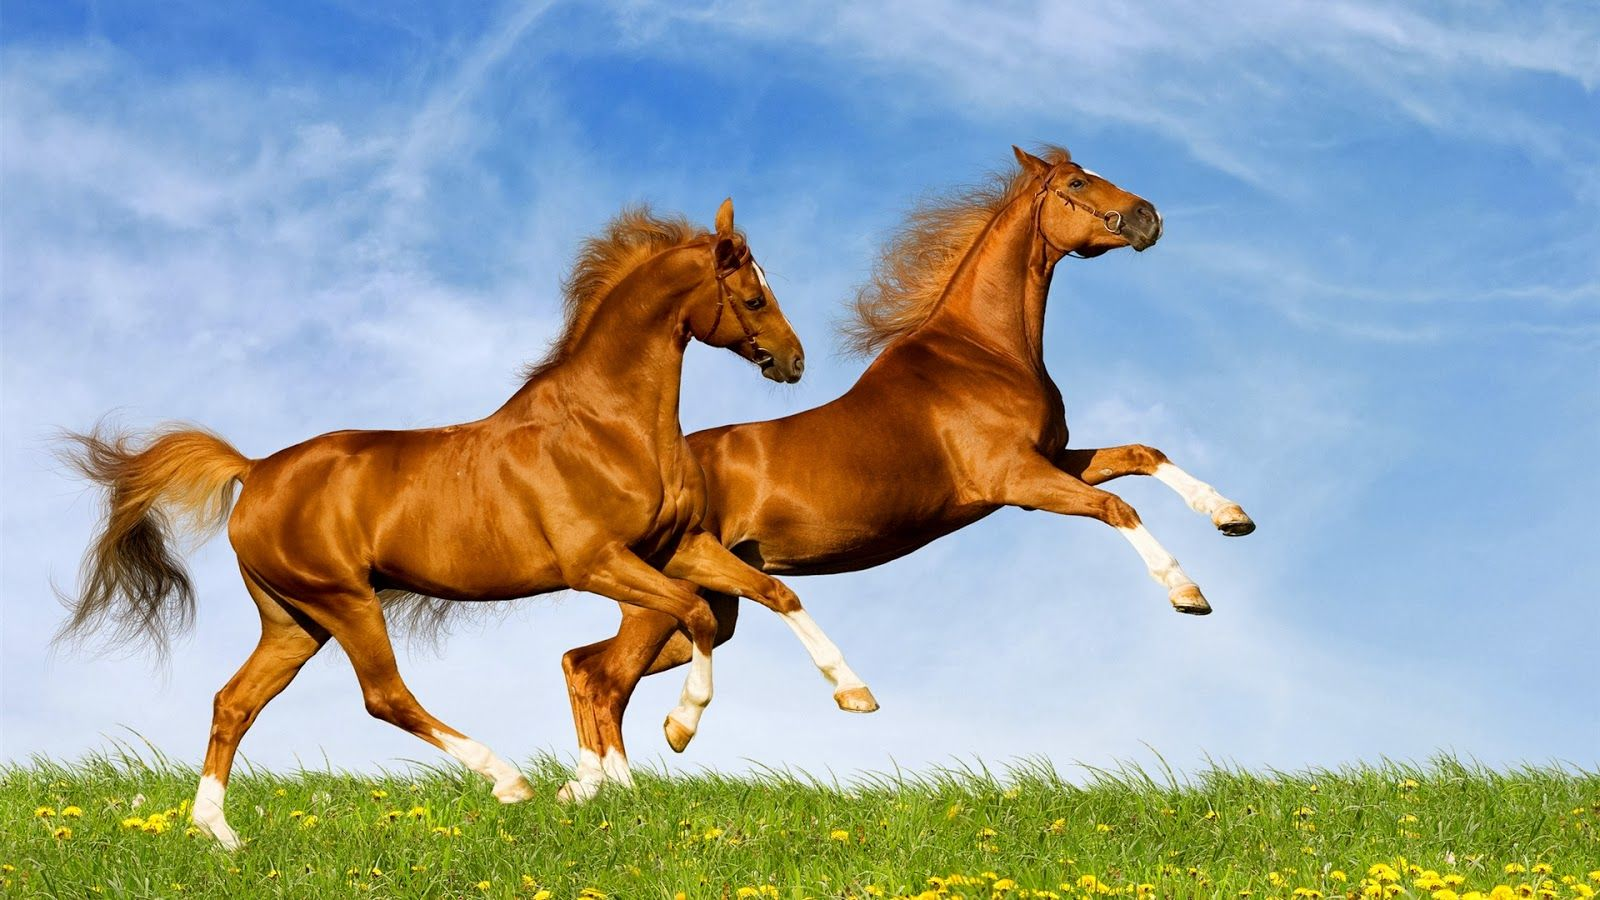 Hd Wallpapers Desktop Horse Free Horses Horse Wallpaper Beautiful Horses